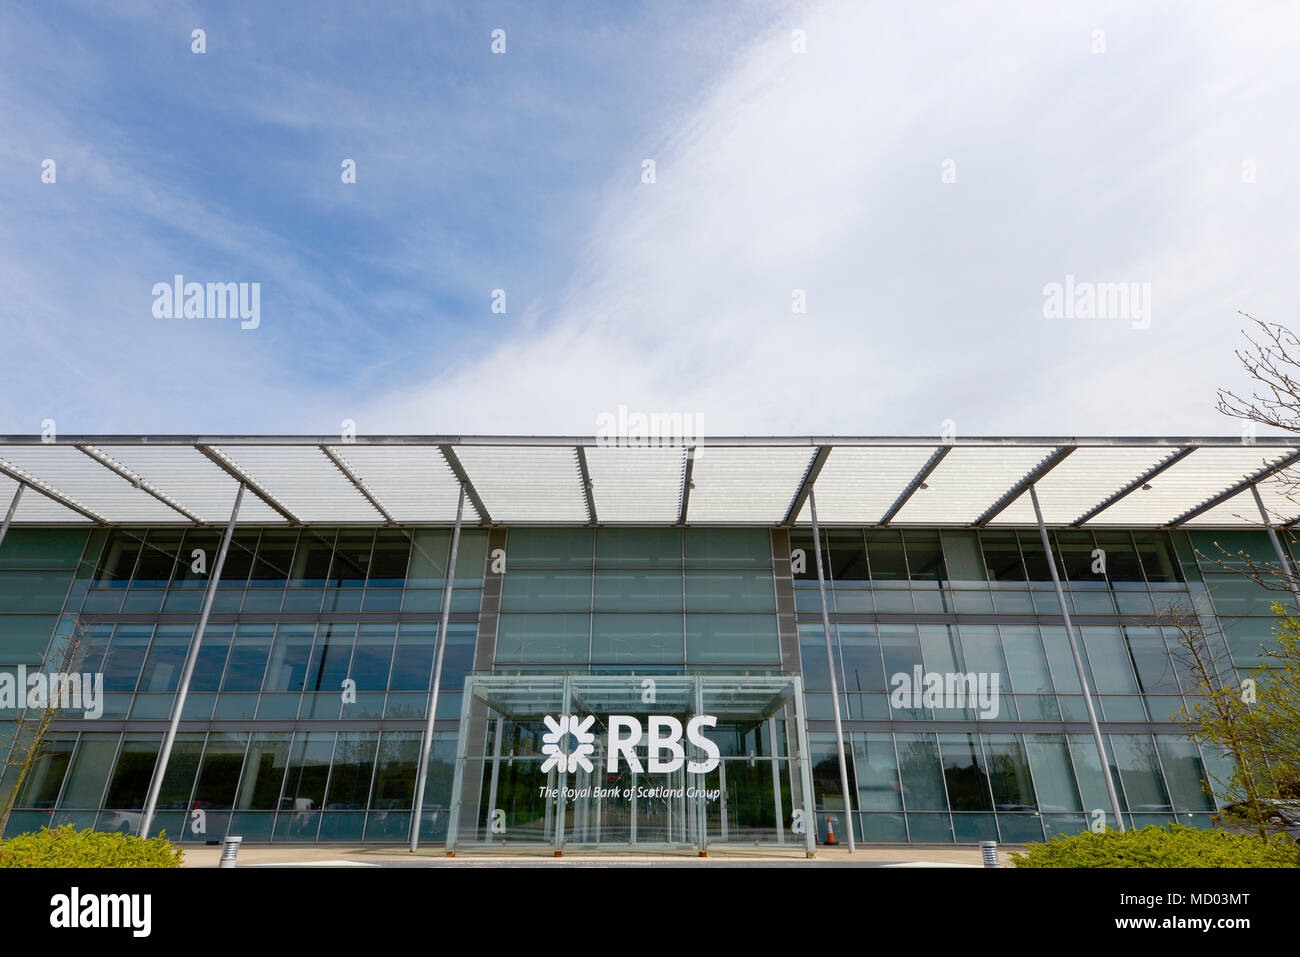 Royal Bank Of Scotland Group Stock Photos & Royal Bank Of Scotland ...